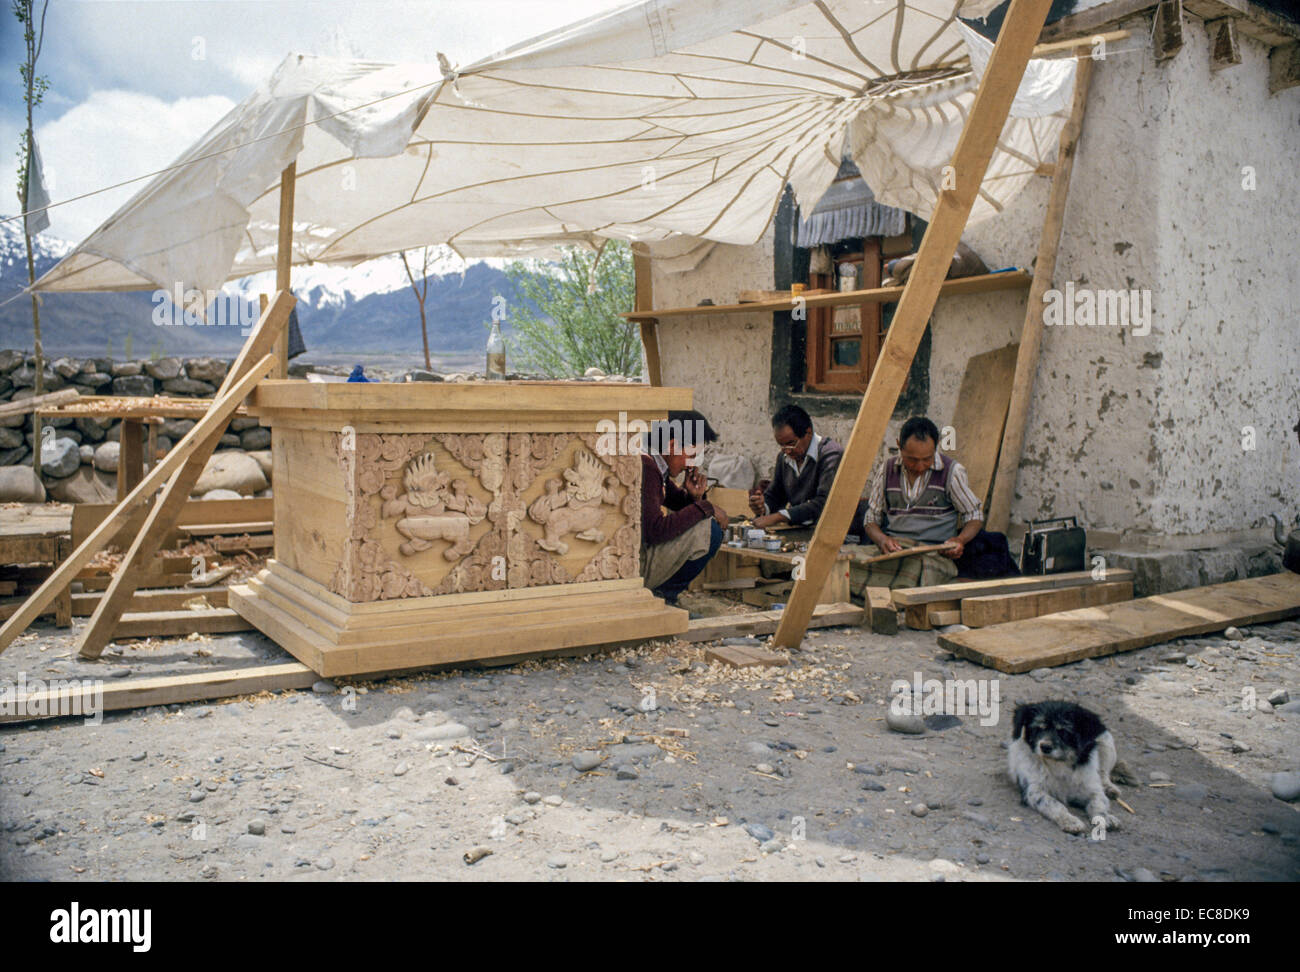 Carpenters carving a large decorative wood pedestal for a wealthy family or monastery in Leh, Ladakh. Stock Photo